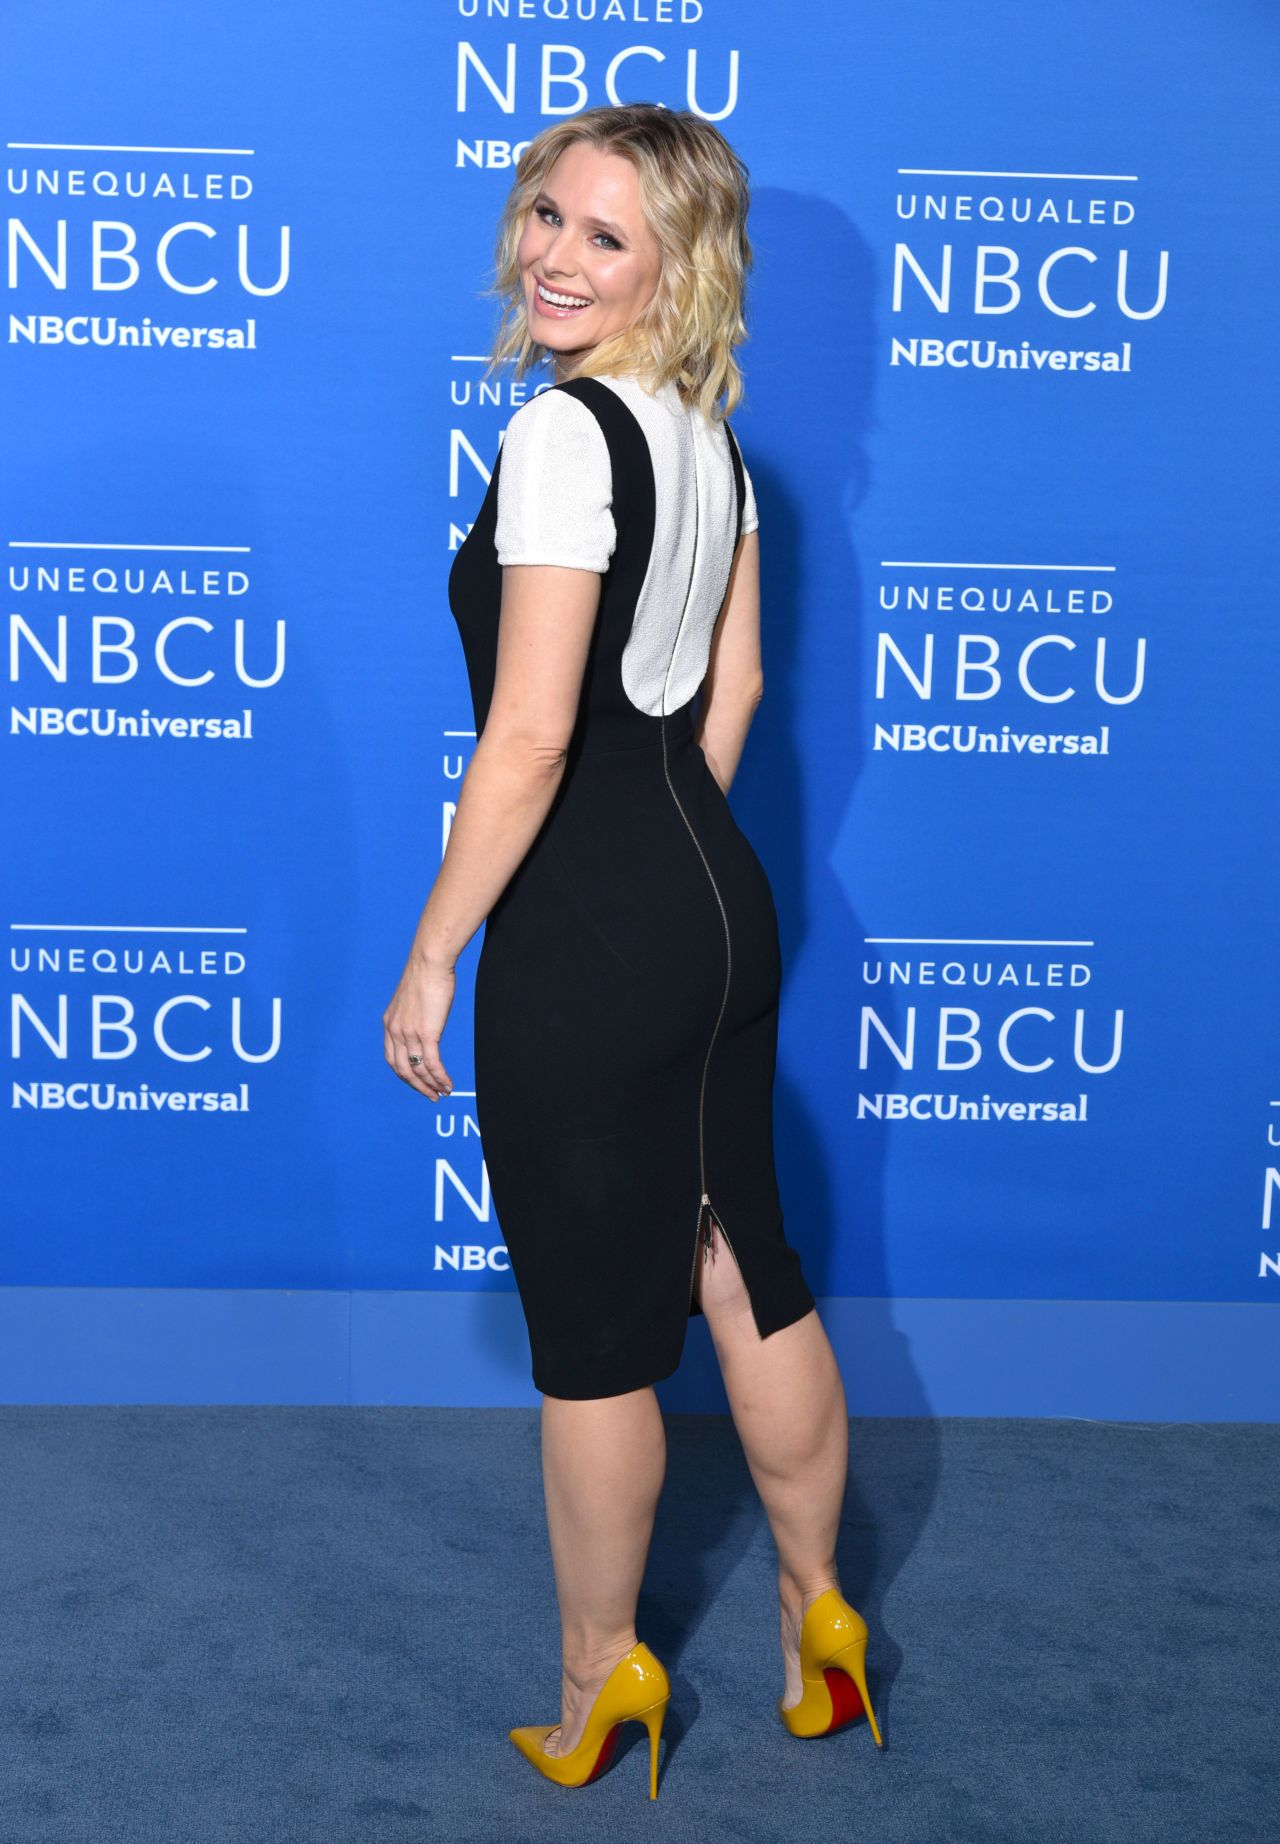 Kristen Bell Nbcuniversal Upfront In Nyc 05 15 2017